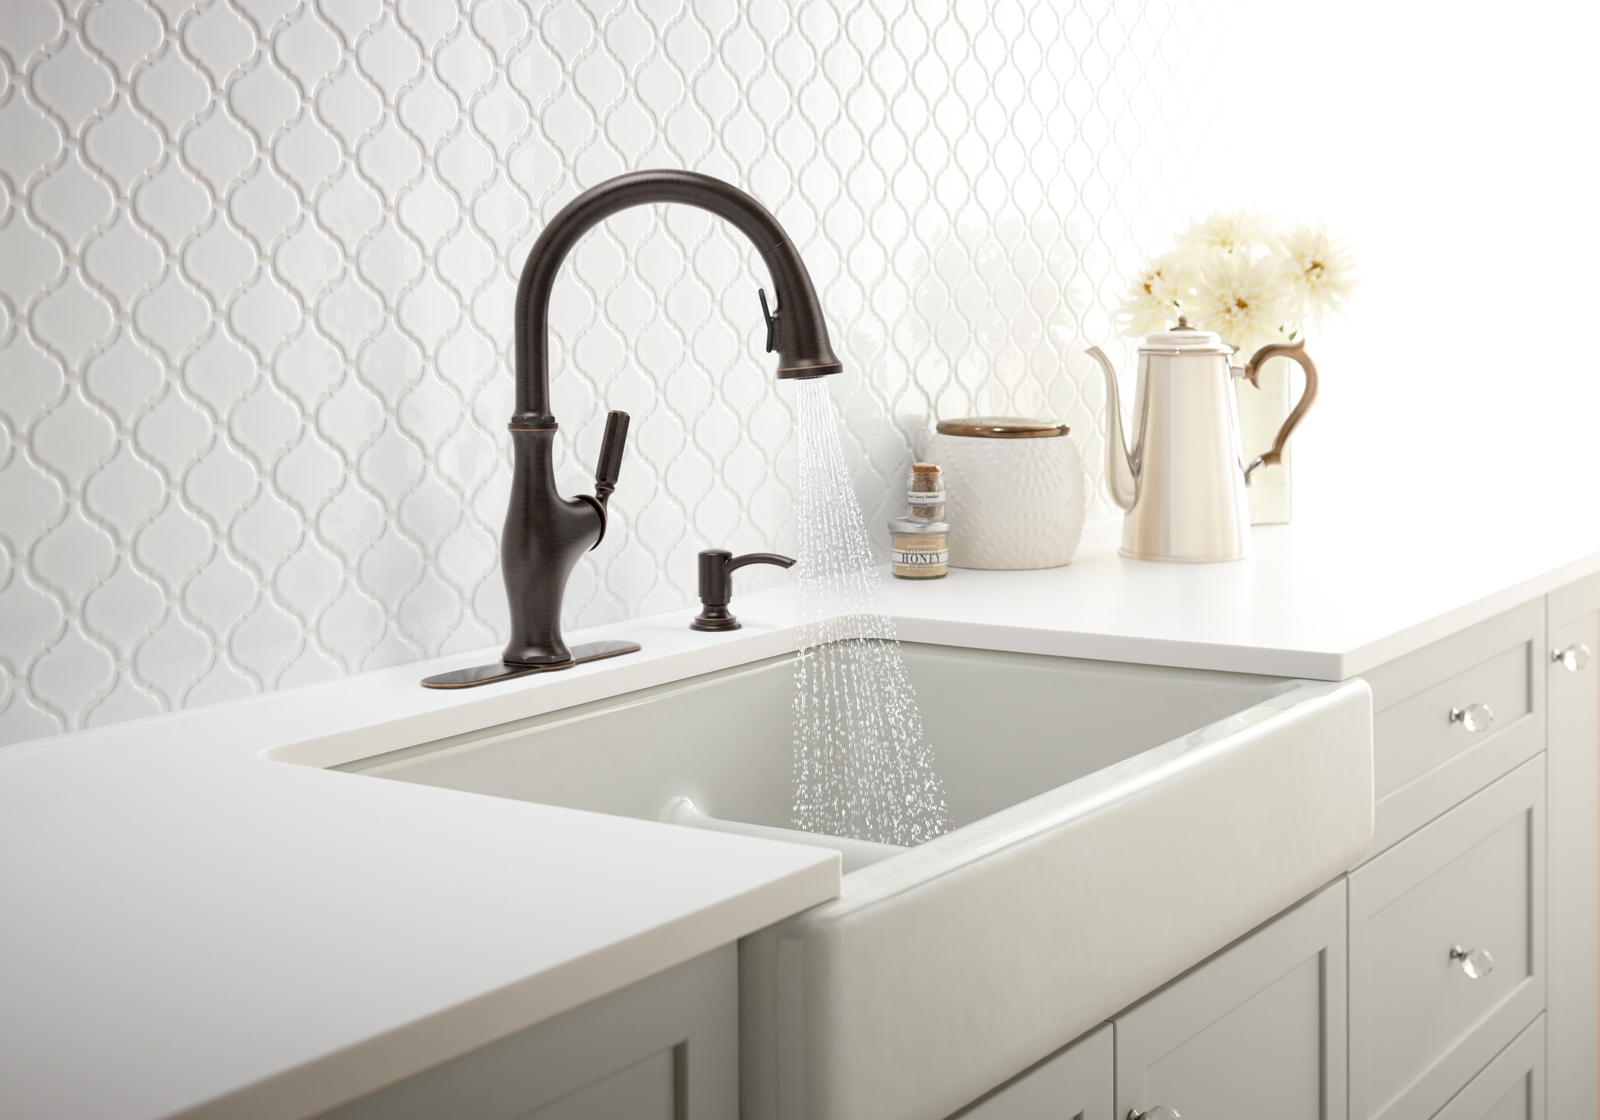 How To Install A New Faucet On A Kitchen Sink